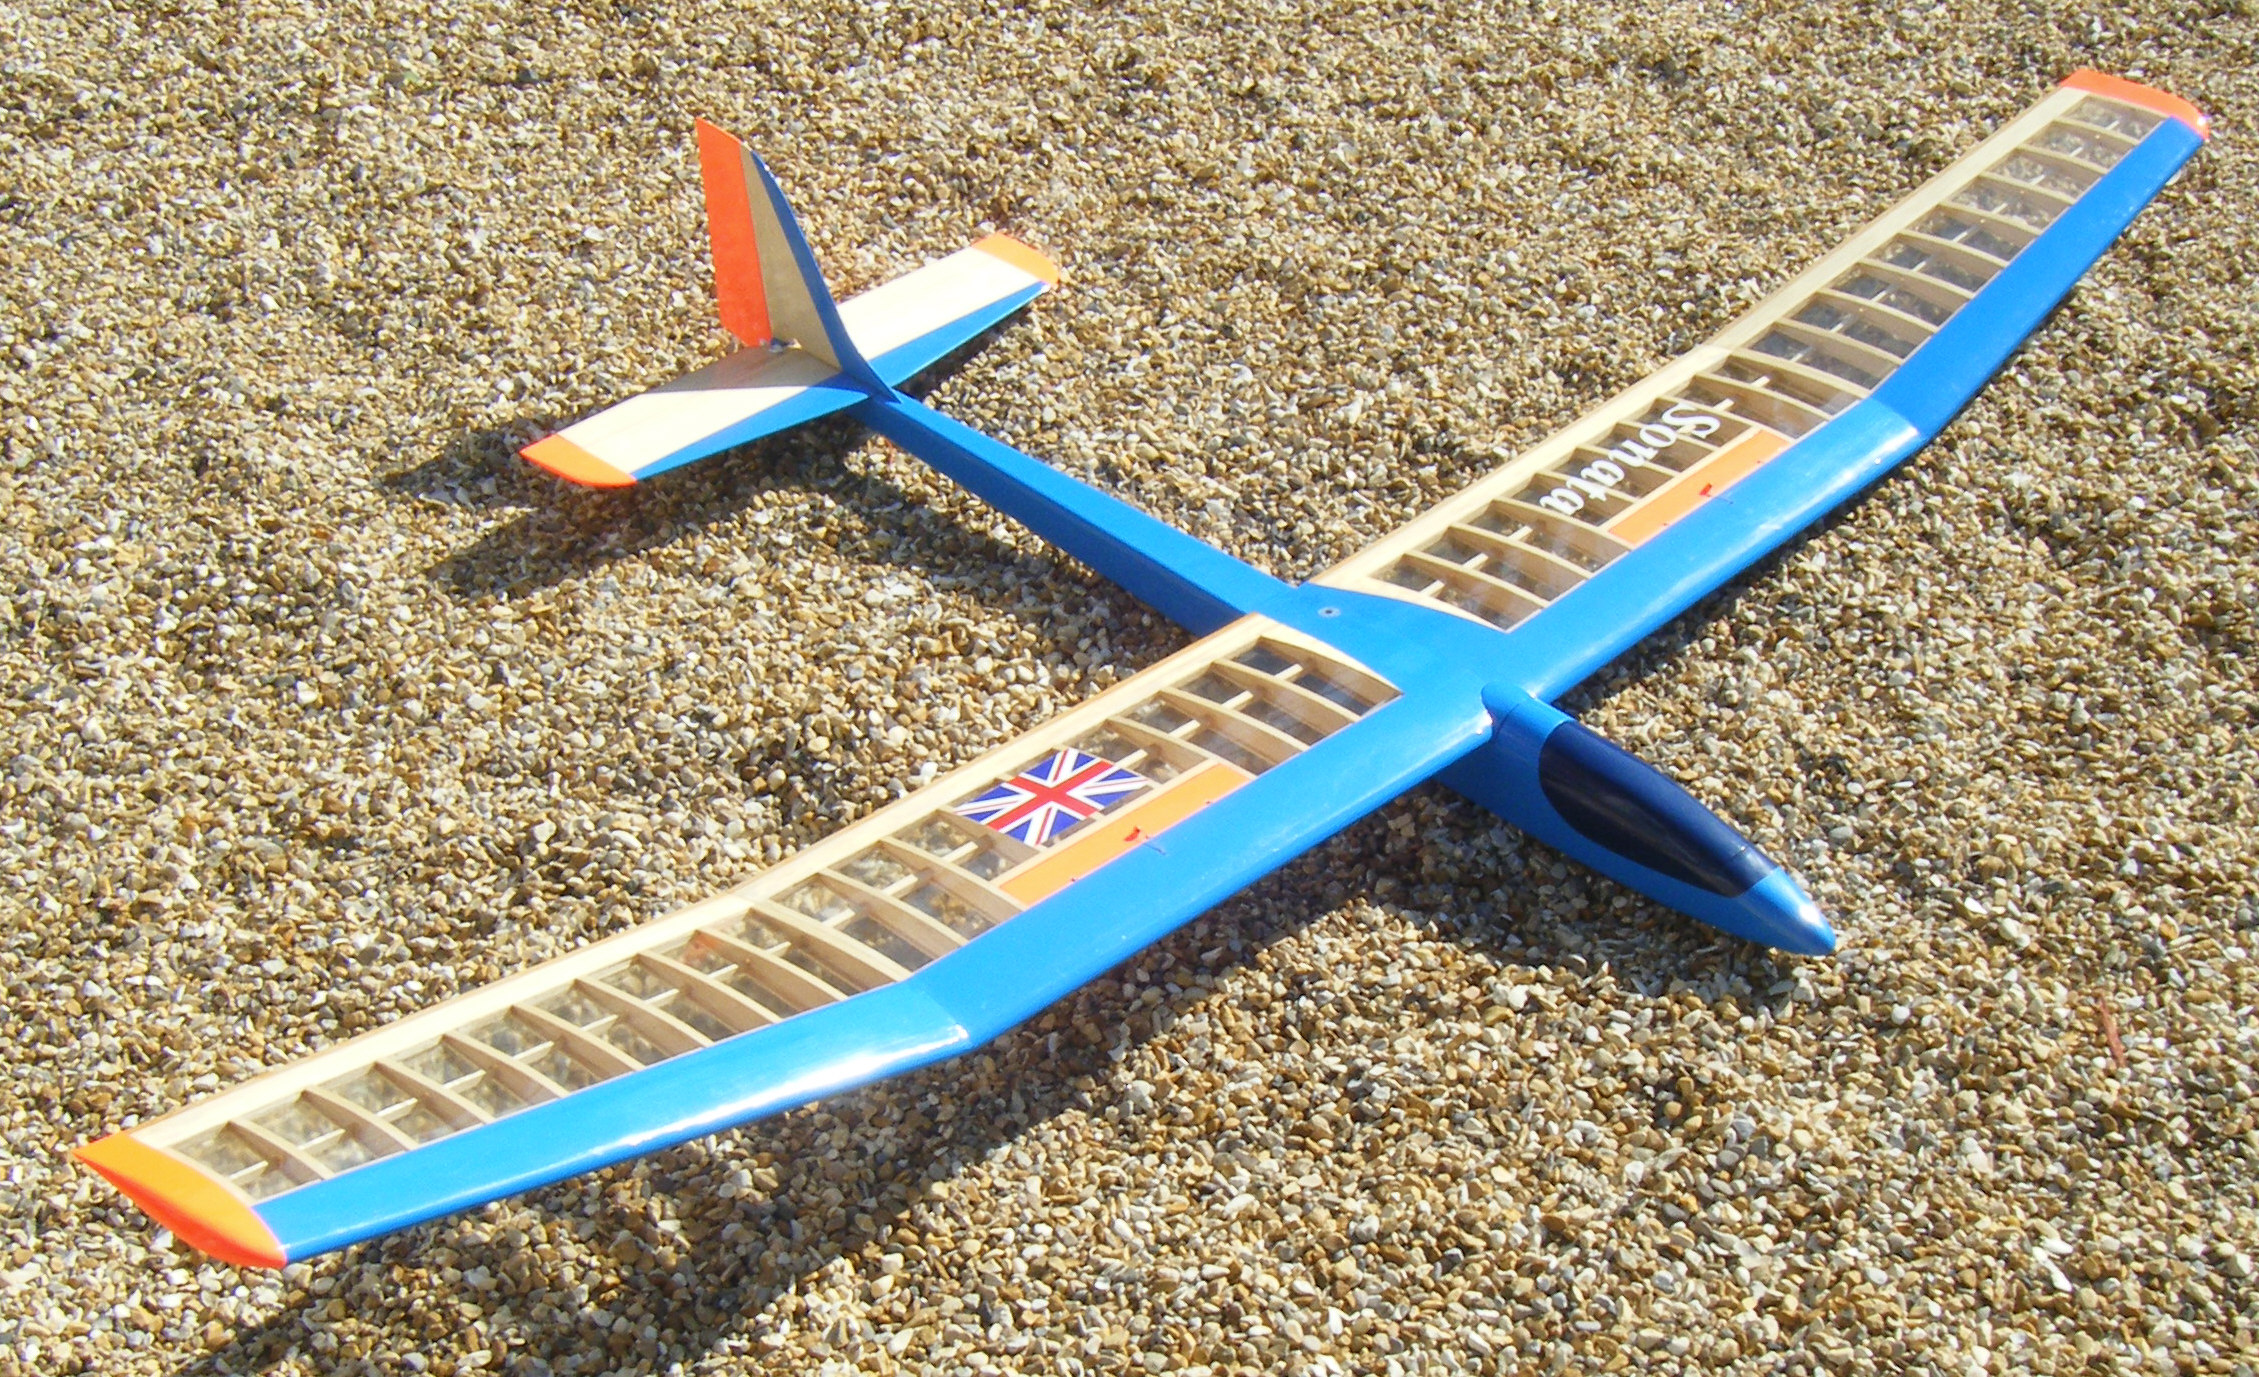 Woodworking model glider plans PDF Free Download